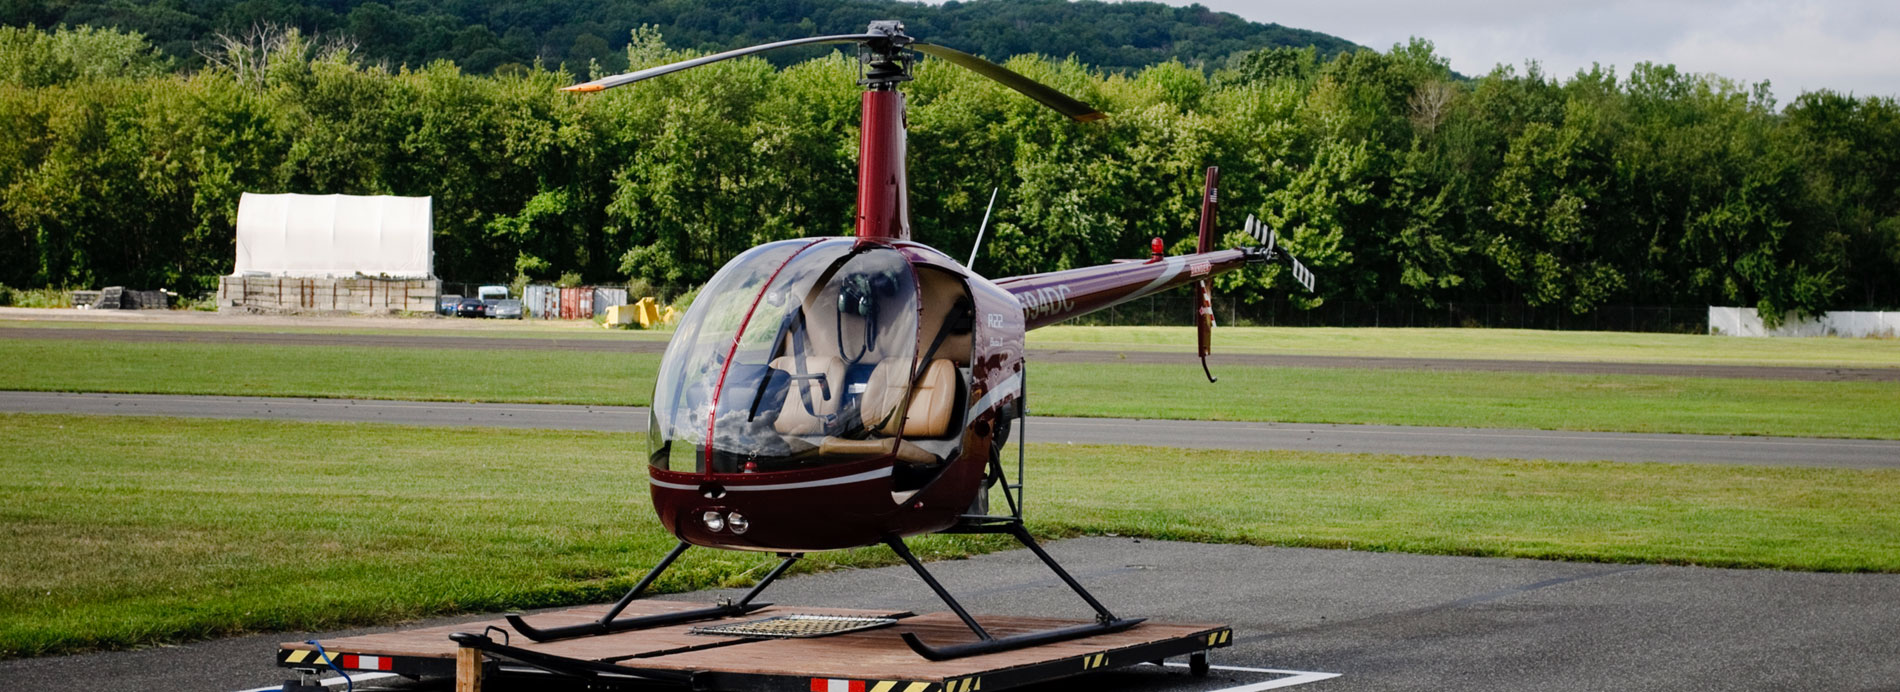 Centennial Helicopters rental program